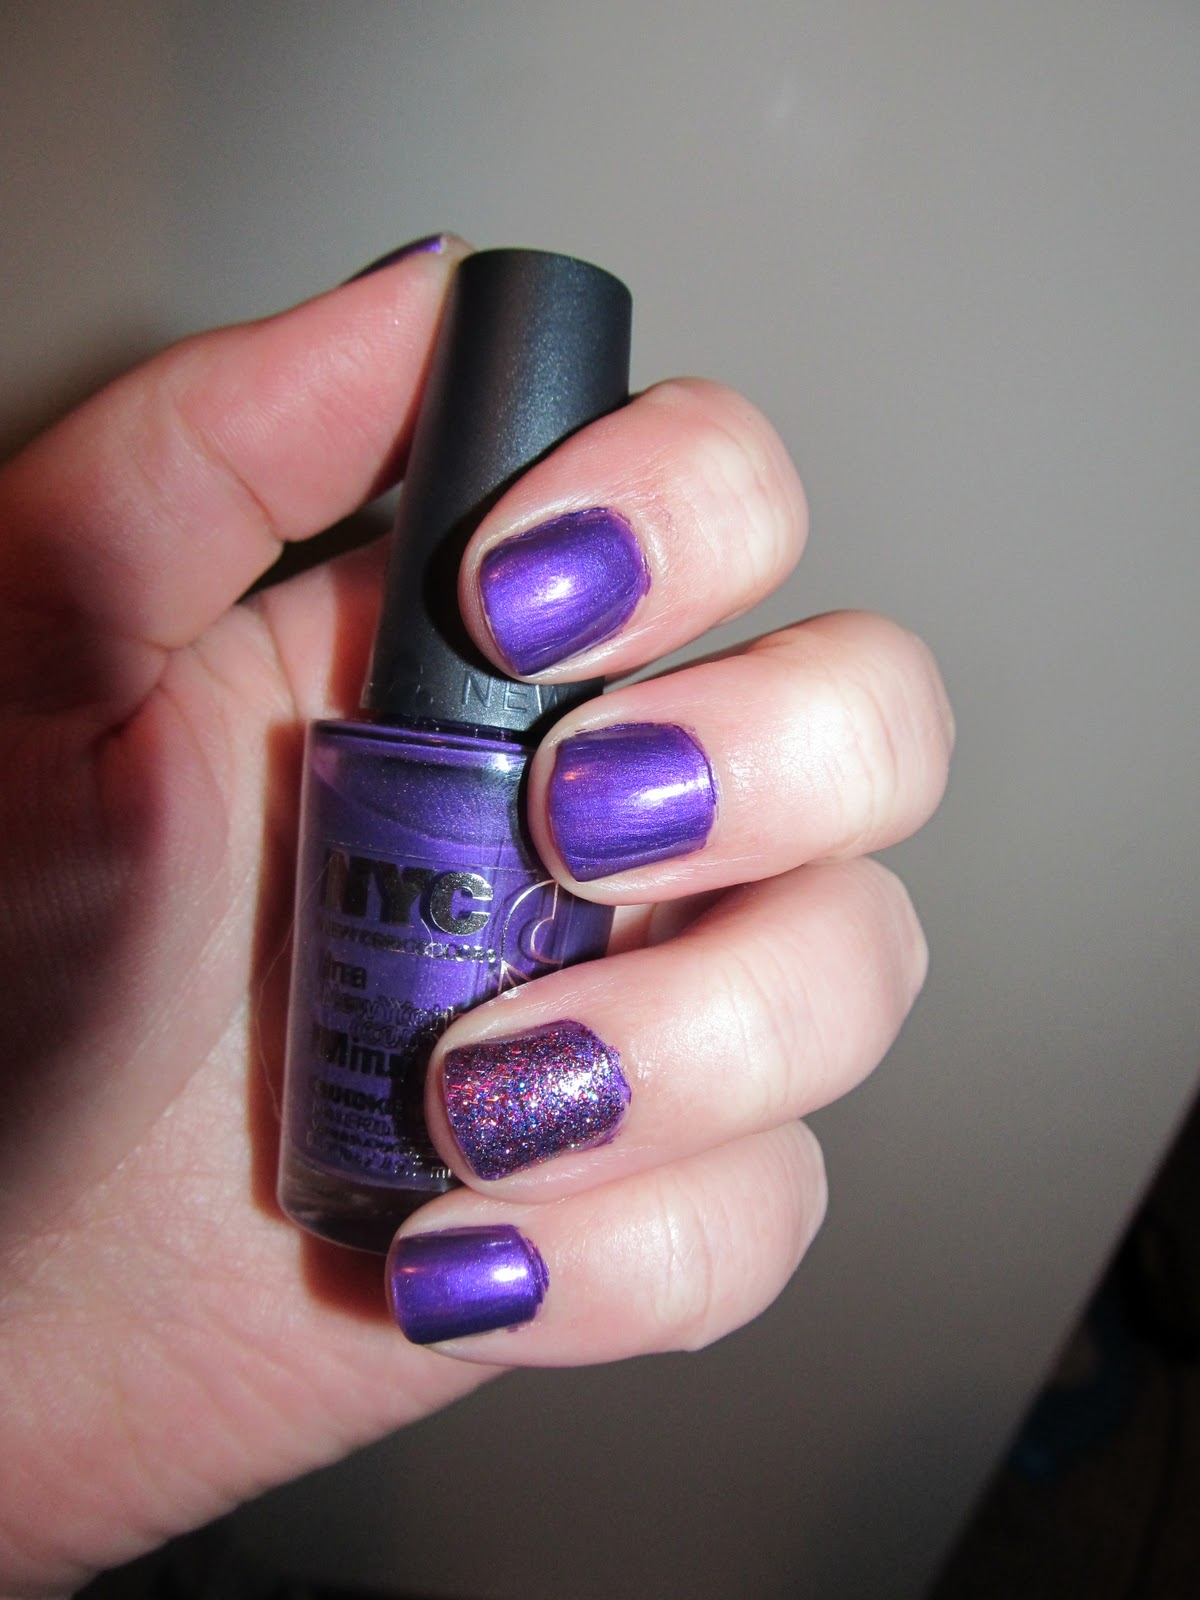 Carrielovesfashion Notd Quot Purple Glam Quot Feat Nyc In A New York Minute Quick Dry Nail Polish In